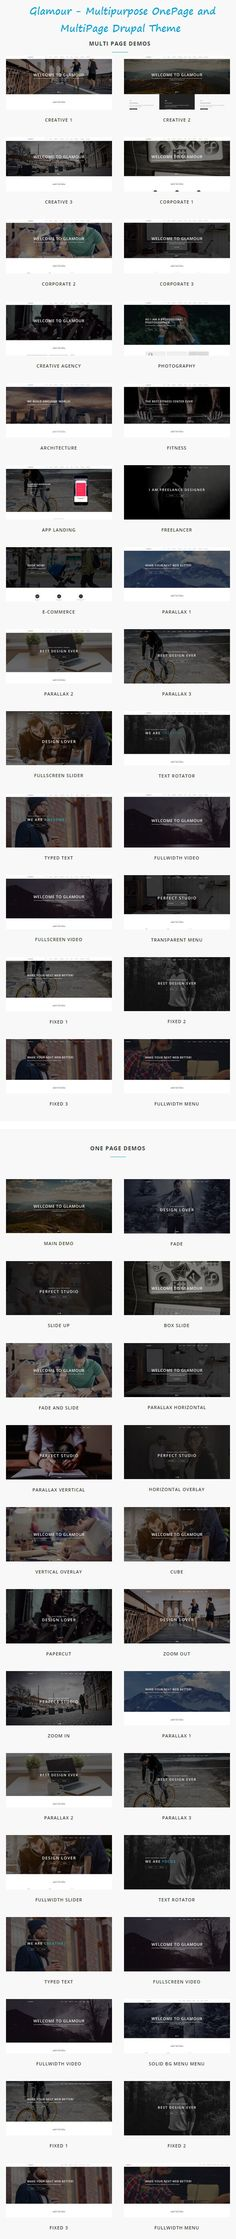 GLAMOUR is powerful multi page and one page #Drupal Theme for #multipurpose website with 60+ stunning homepage #layouts. Download Now!